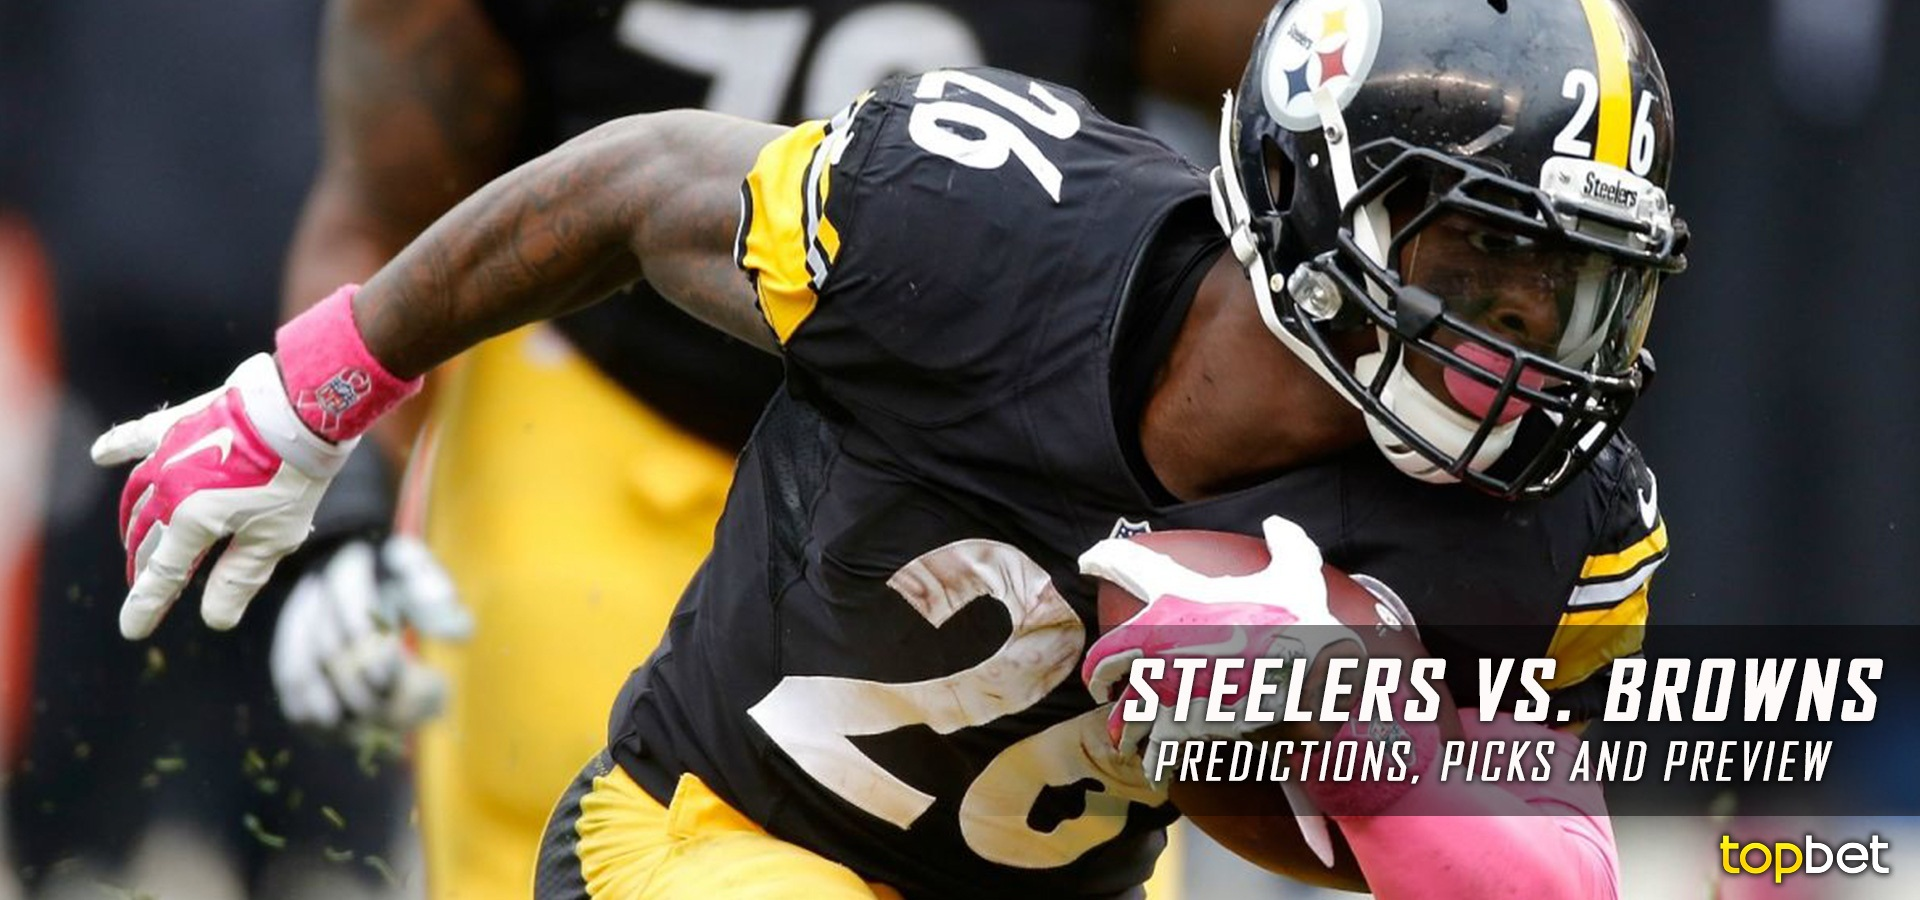 sports news cleveland browns pittsburgh steelers prediction preview pick